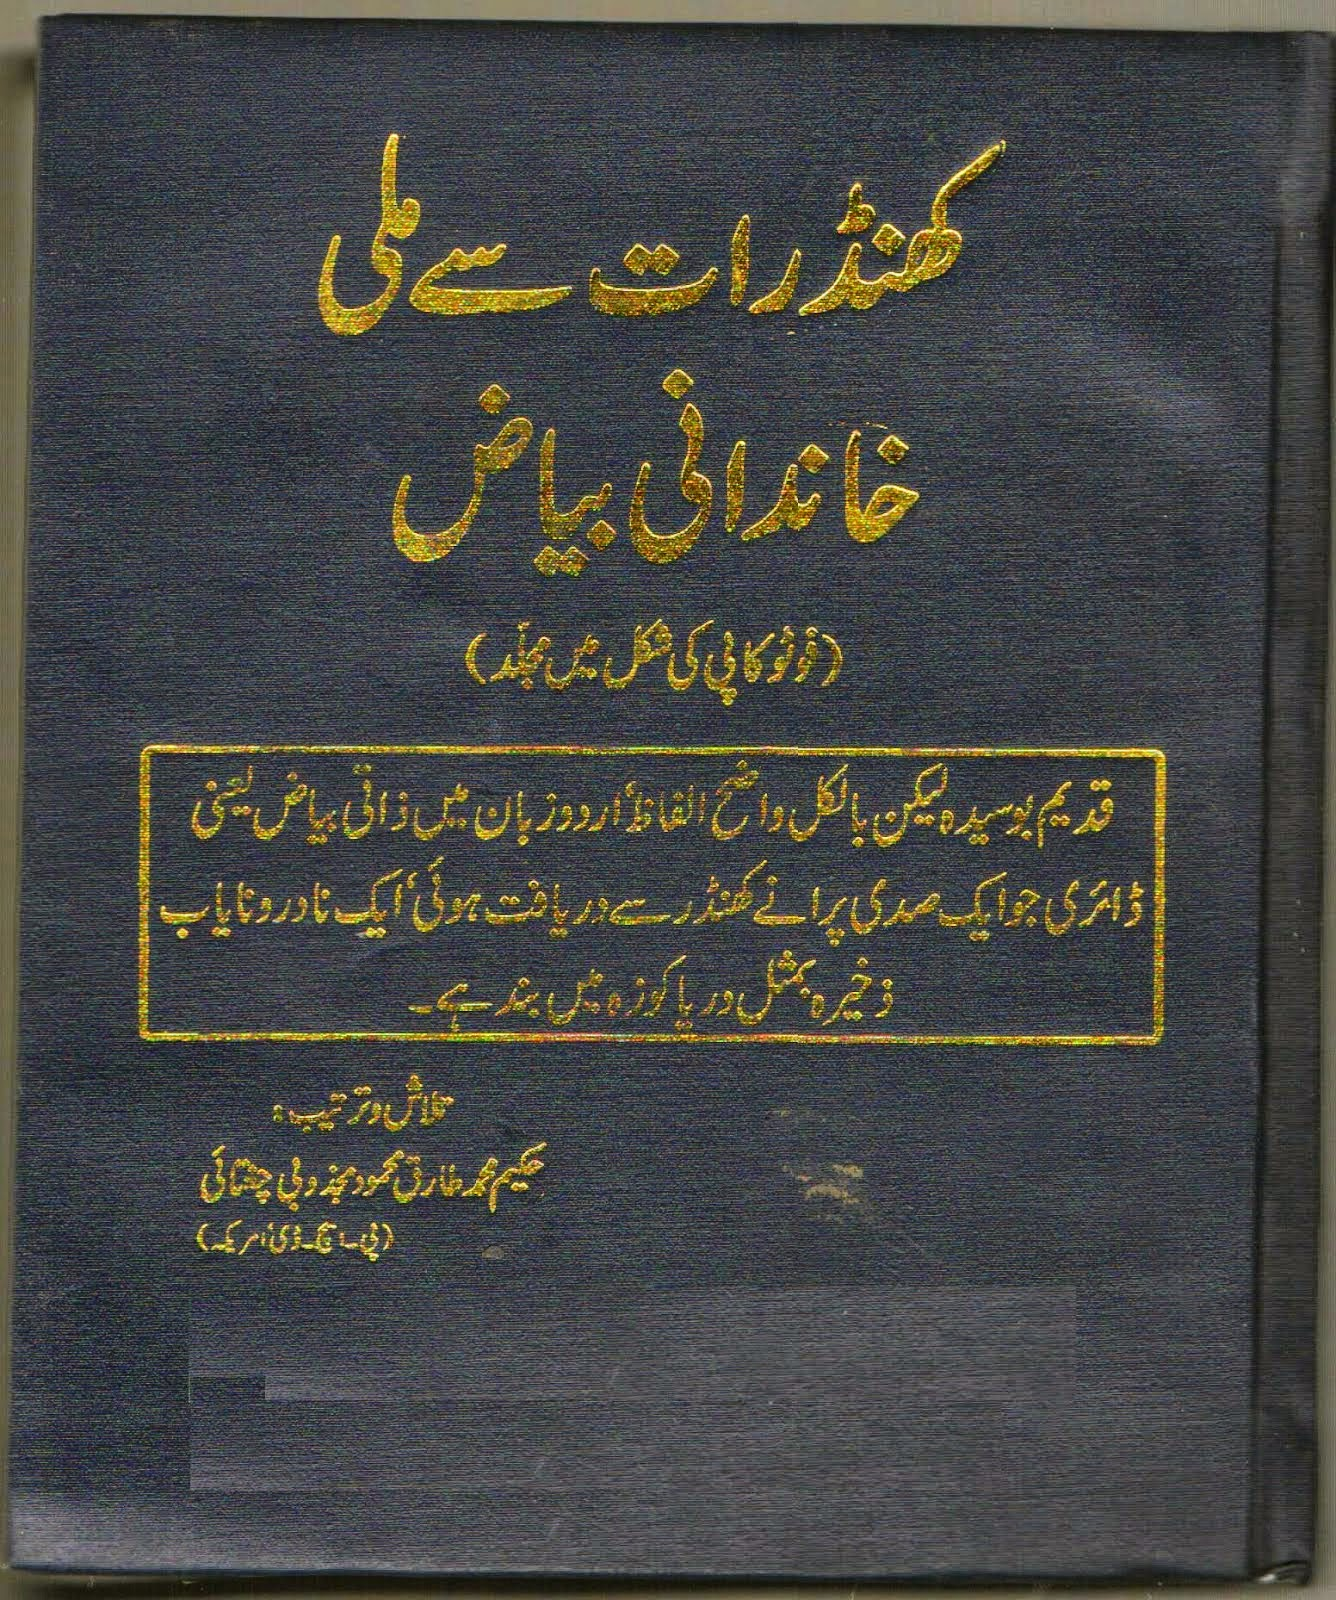 30 + AMLIYAT BOOKS FREE DOWNLOAD IN URDU - ROOHANI AMLIYAT